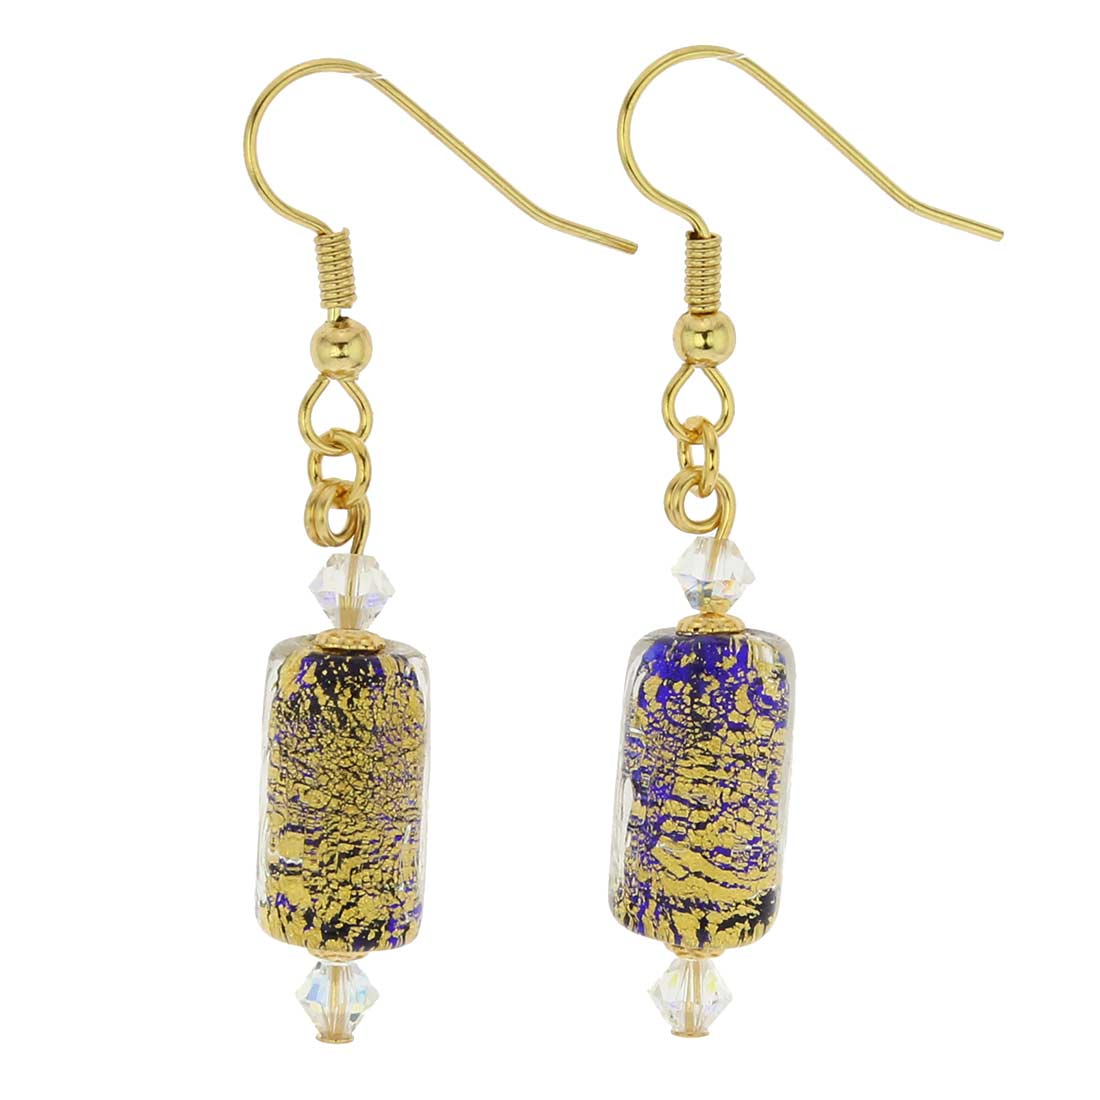 Ca D'Oro Murano Barrel Earrings - Cobalt Blue